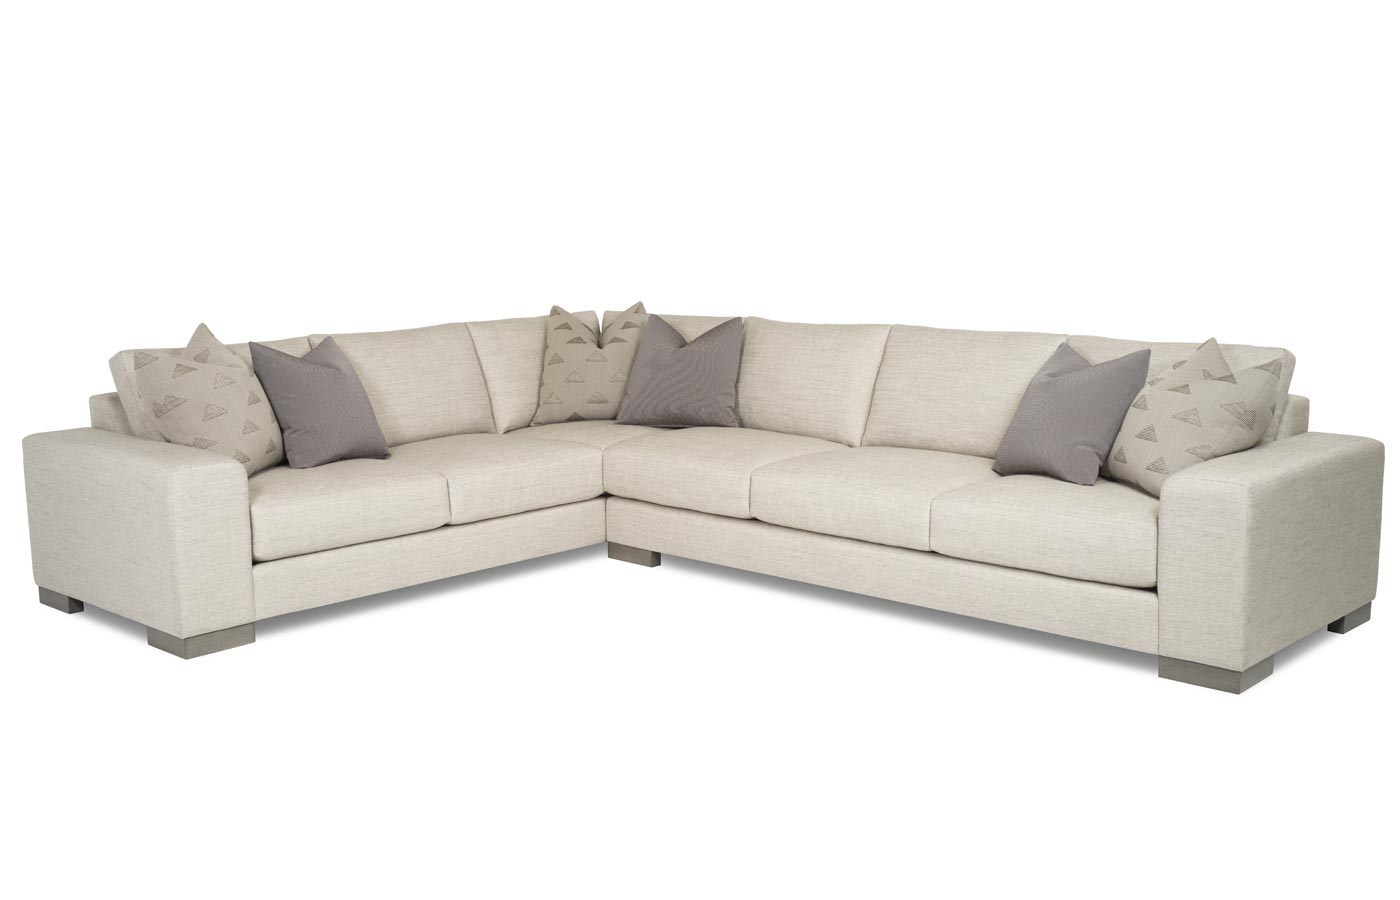 Mateo 2pc Sectional